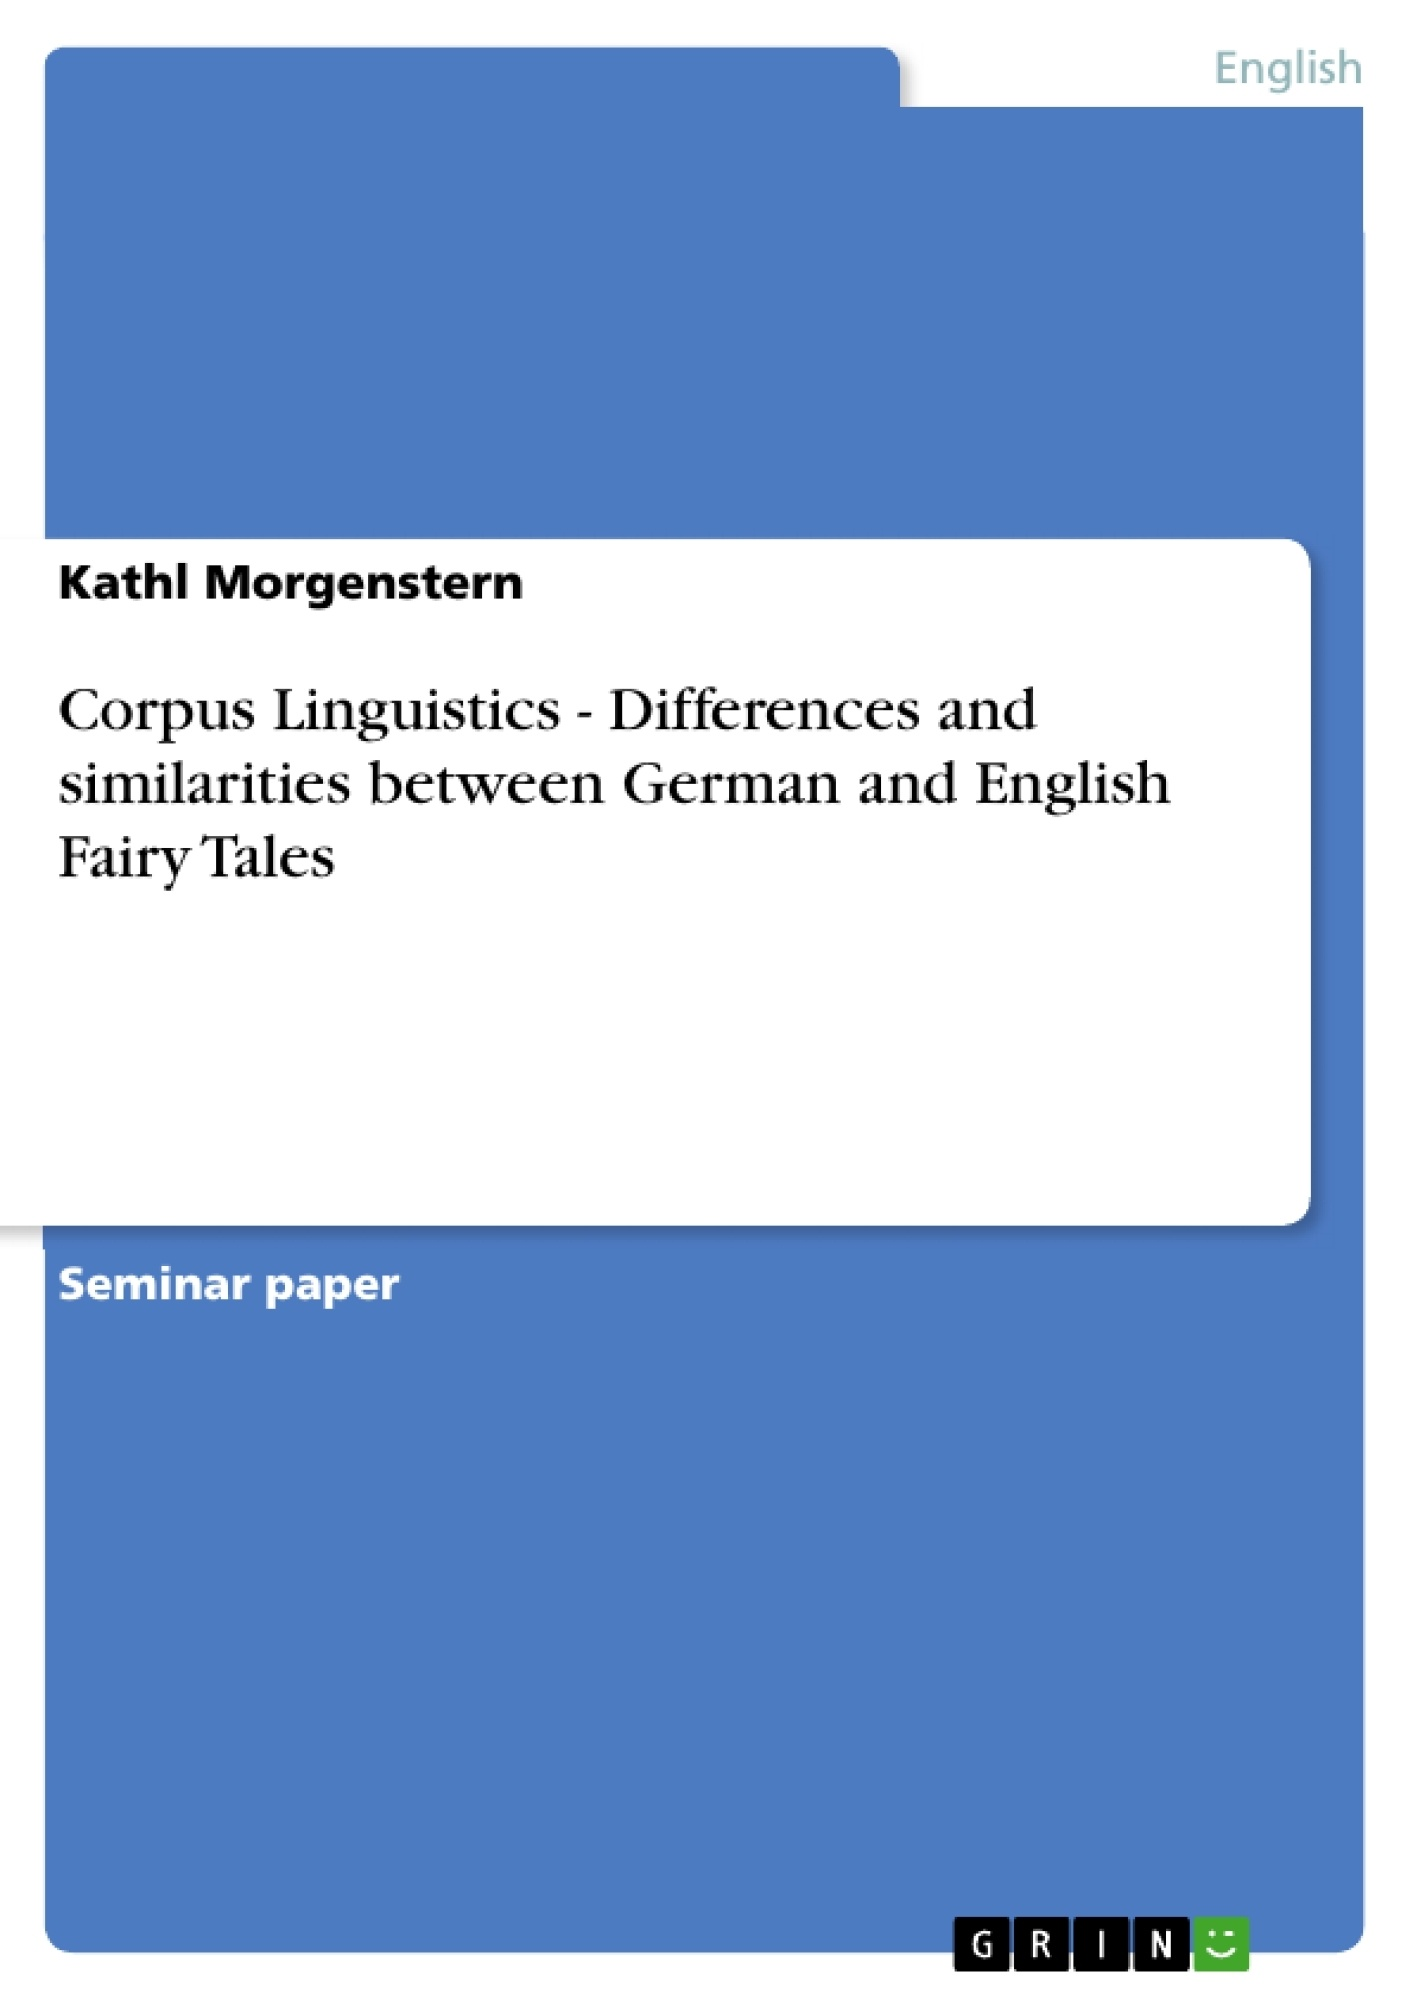 Title: Corpus Linguistics - Differences and similarities between German and English Fairy Tales